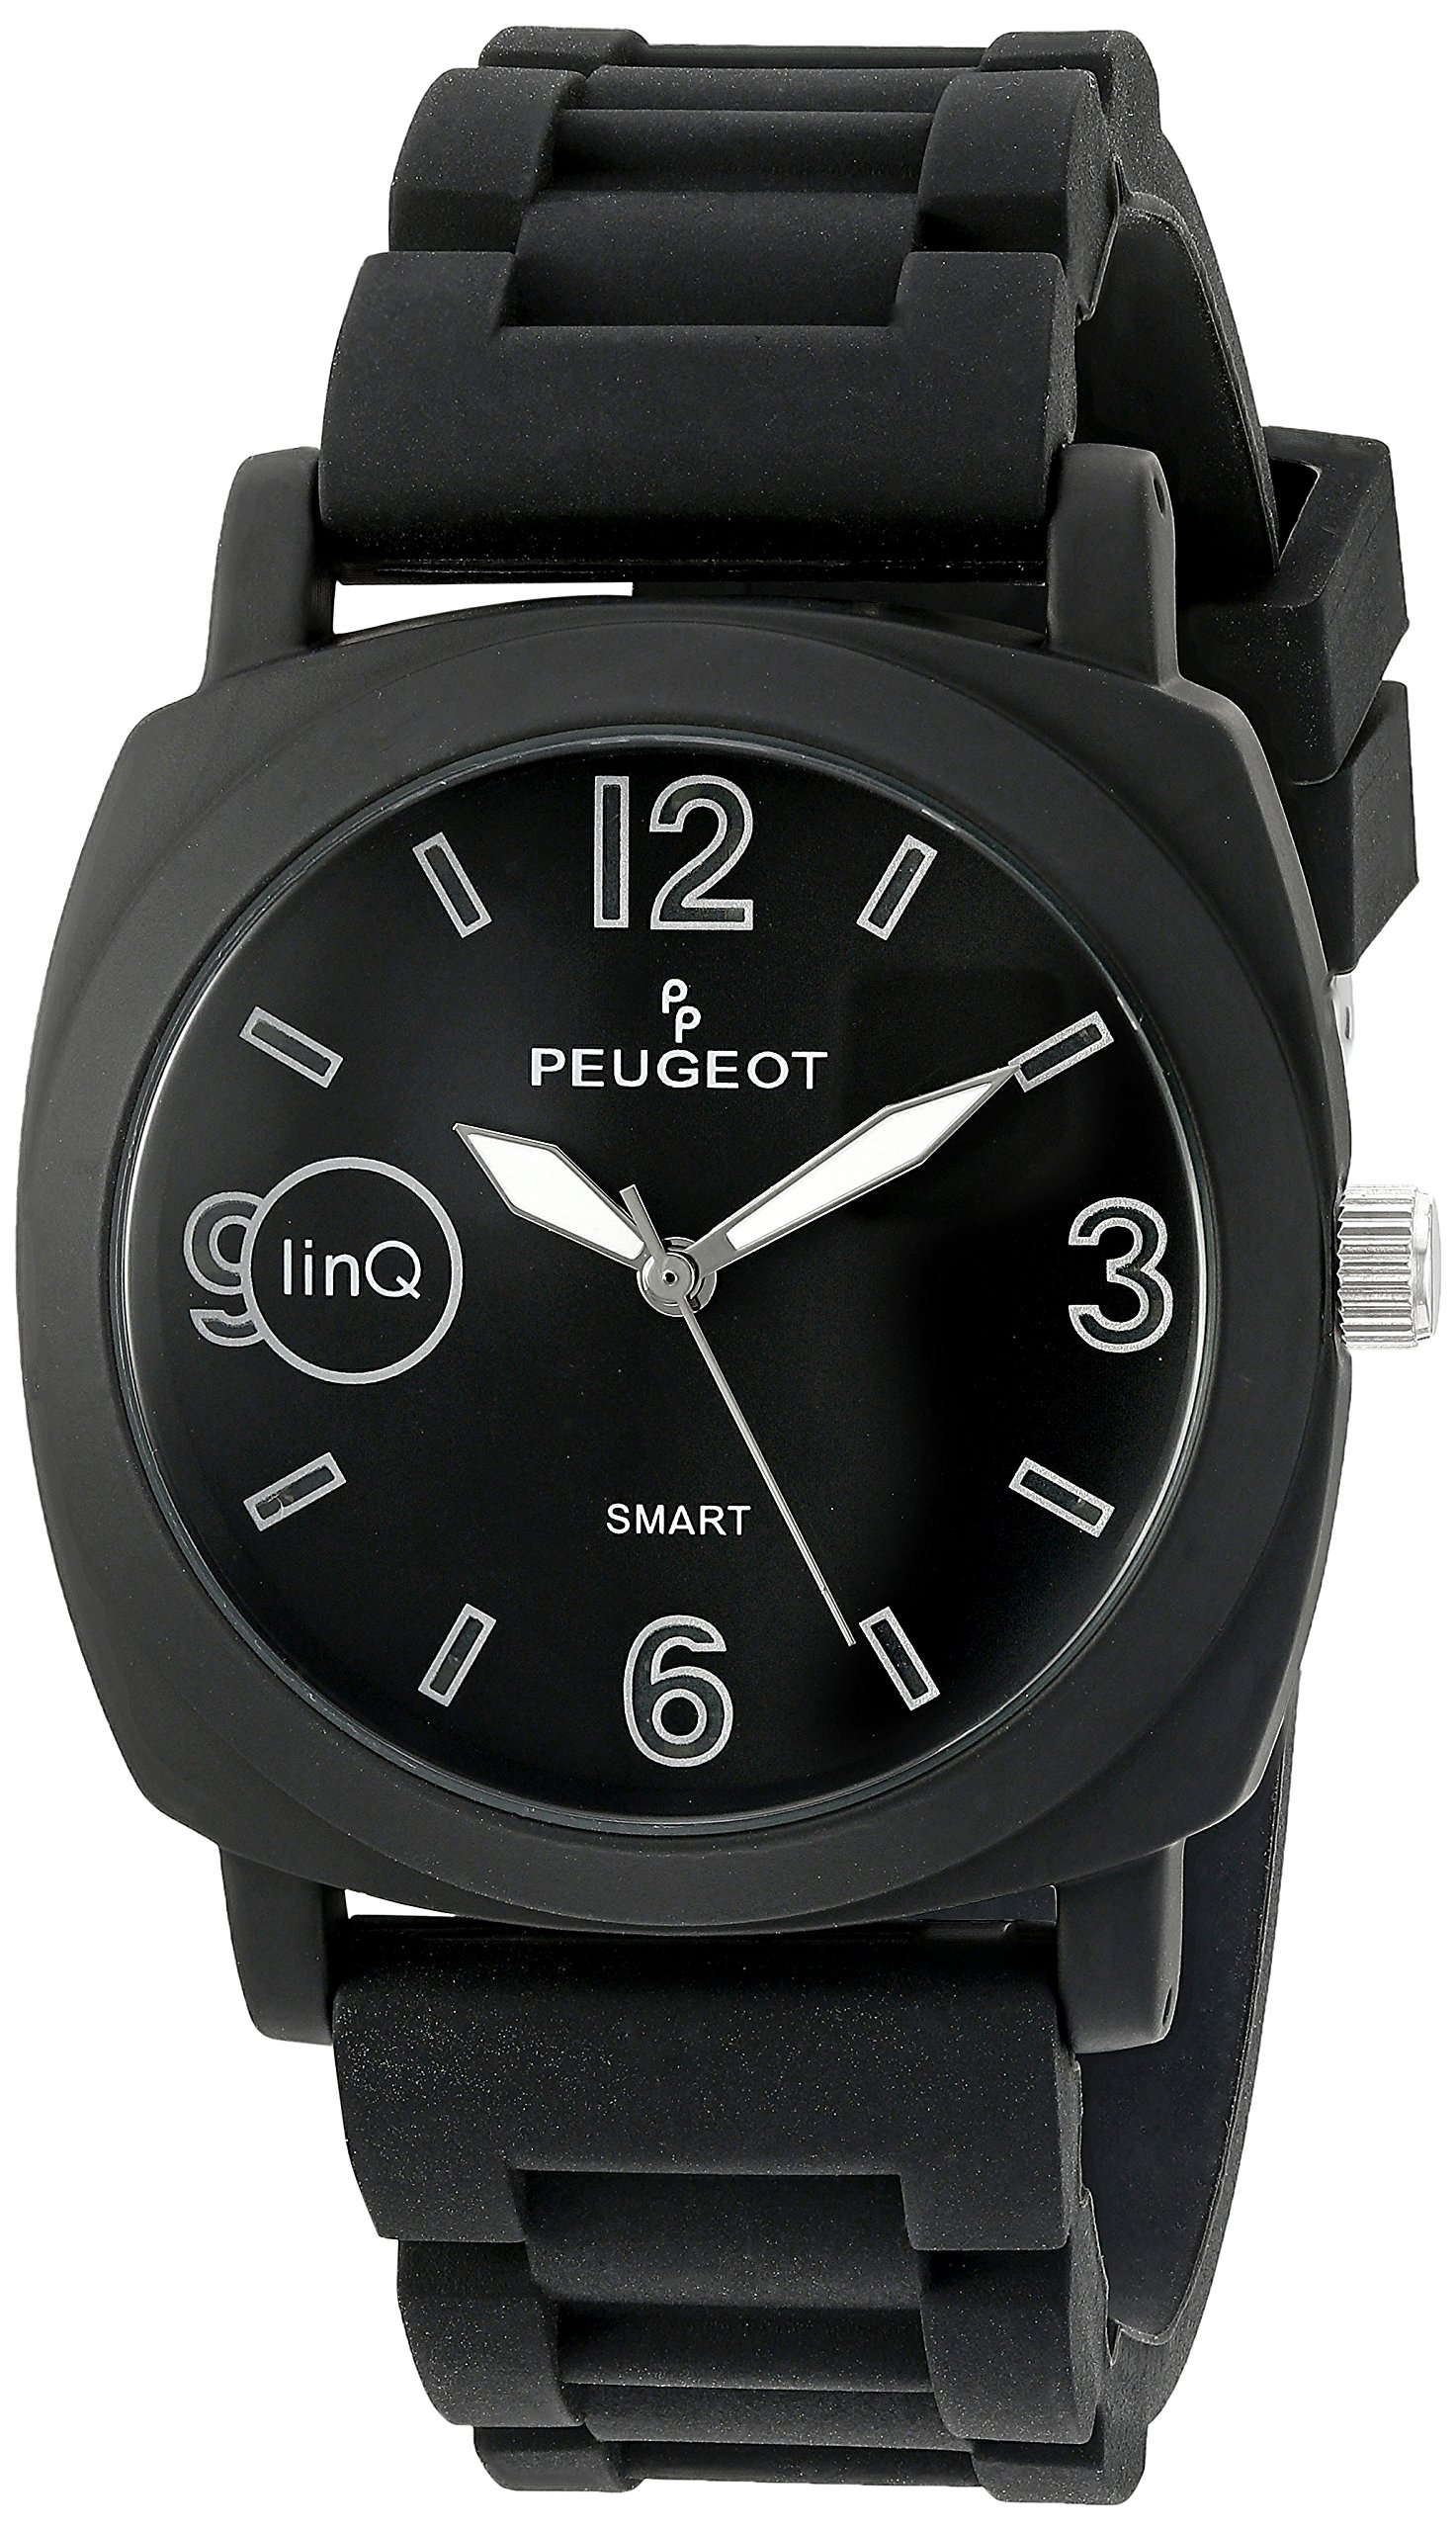 Peugeot 'Bluetooth Connected' Quartz Metal and Rubber Smart Watch, Color Black (Model: LQ1001BK)